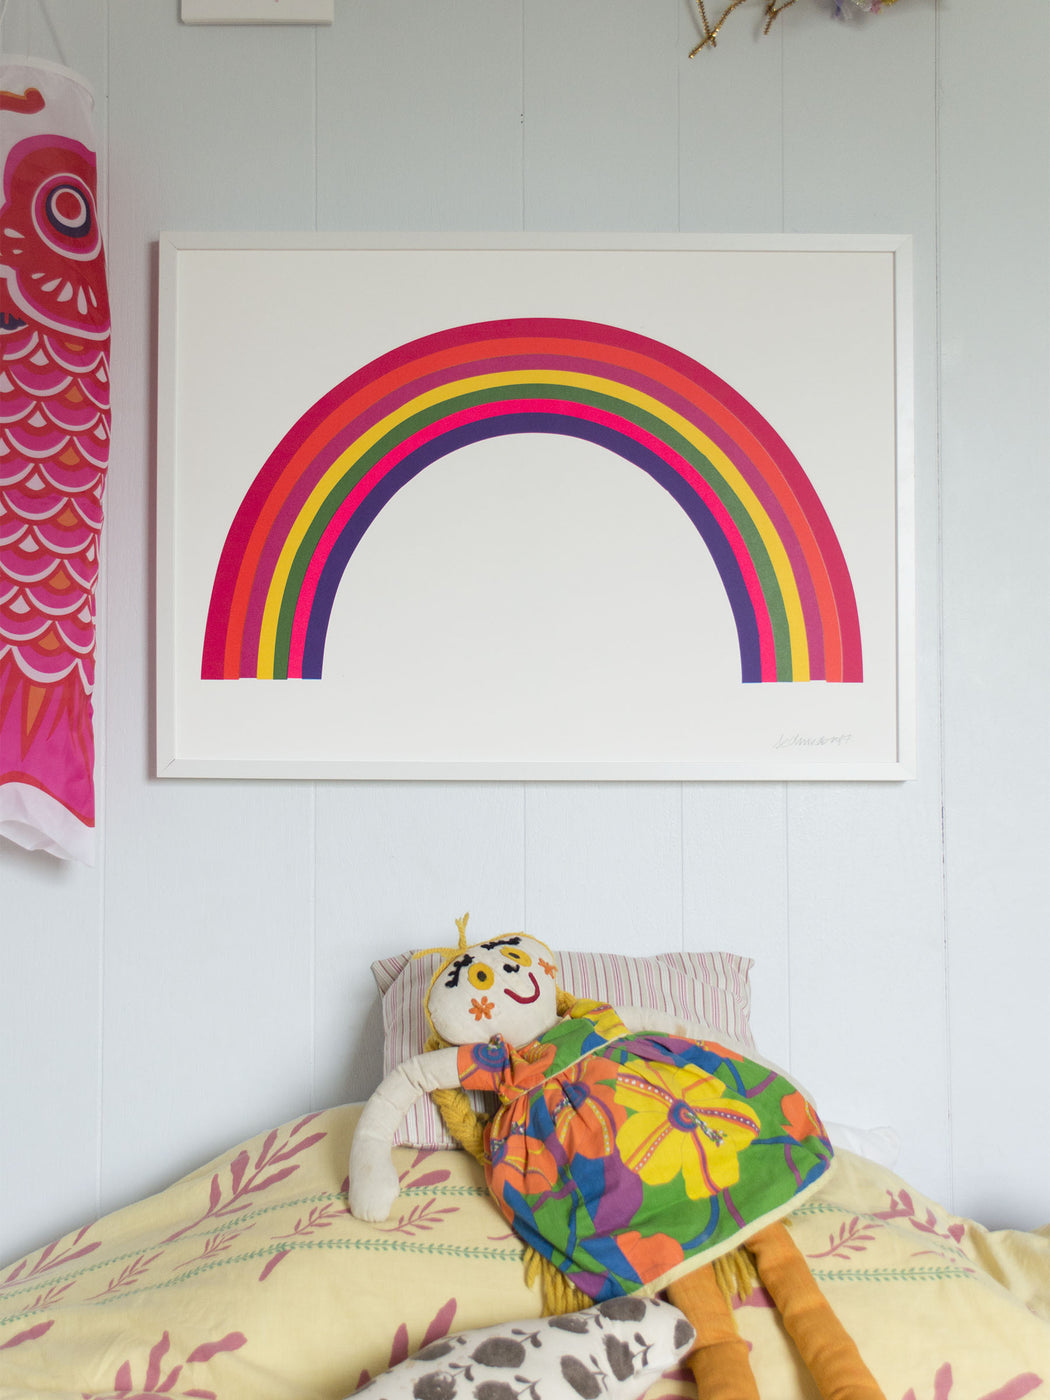 neon rainbow art print in a child's room.